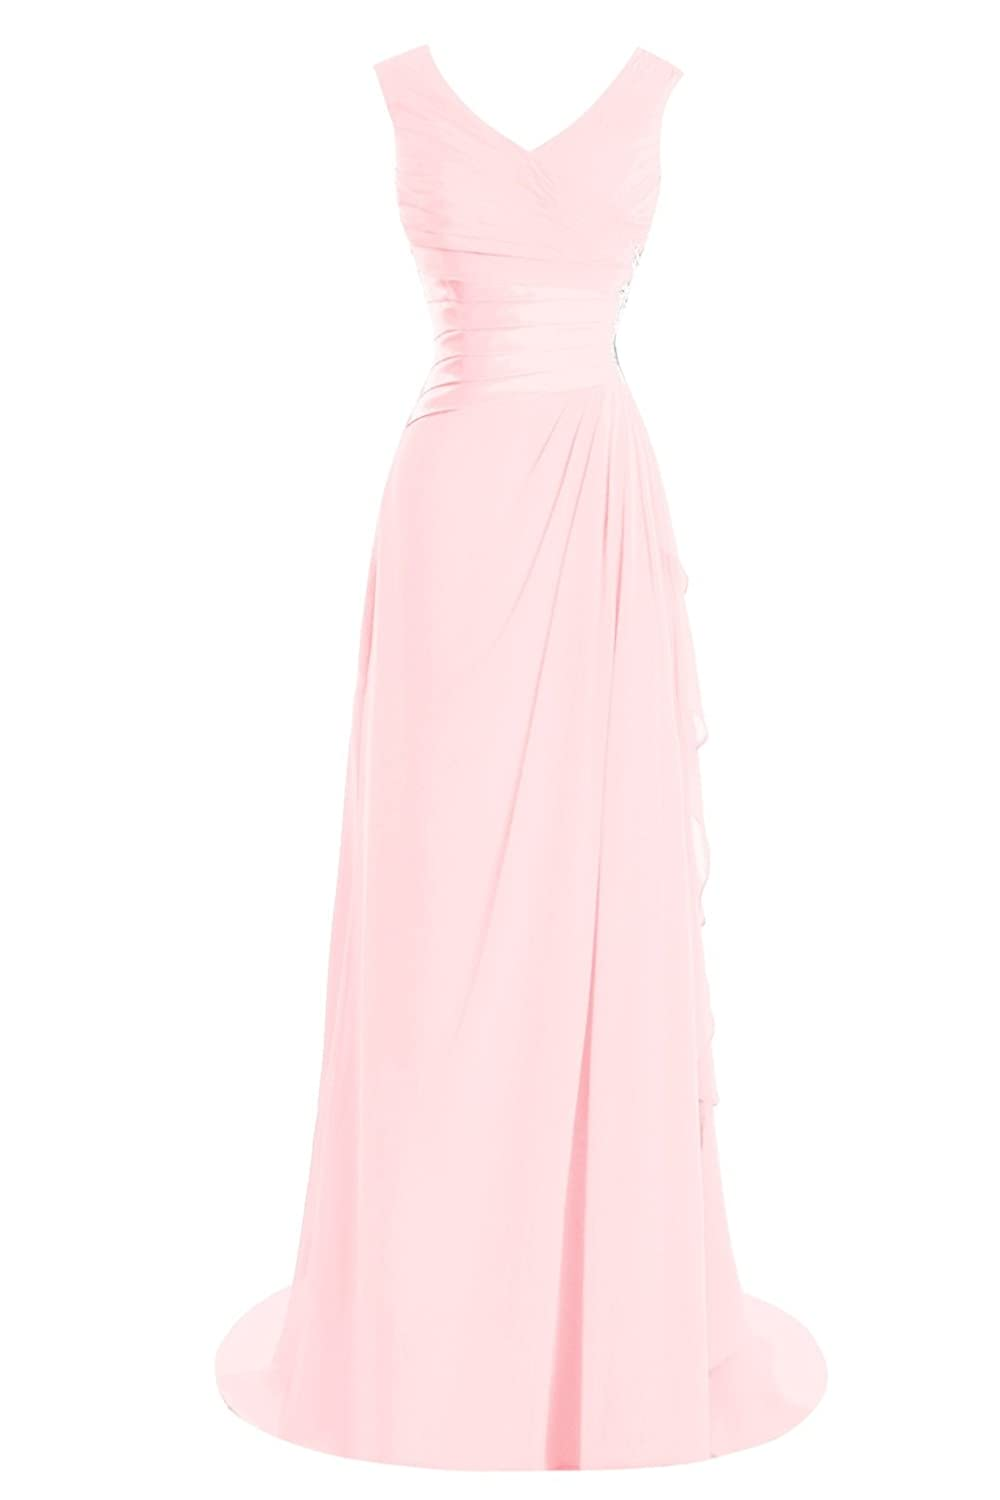 blueshing Pink Bess Bridal Women's A Line V Neck Appliques Formal Long Prom Evening Dress